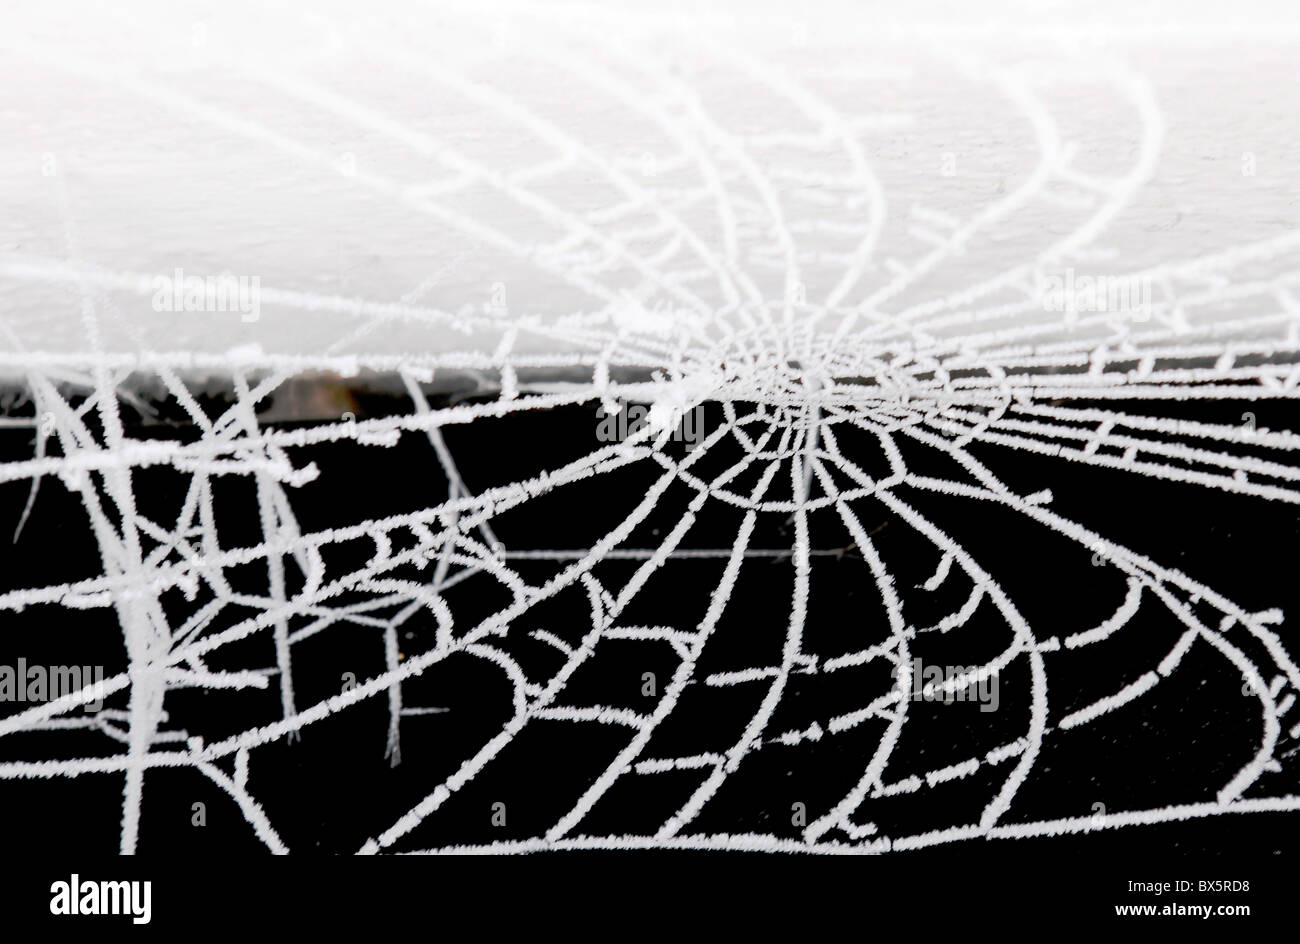 A cobweb covered in frost - Stock Image